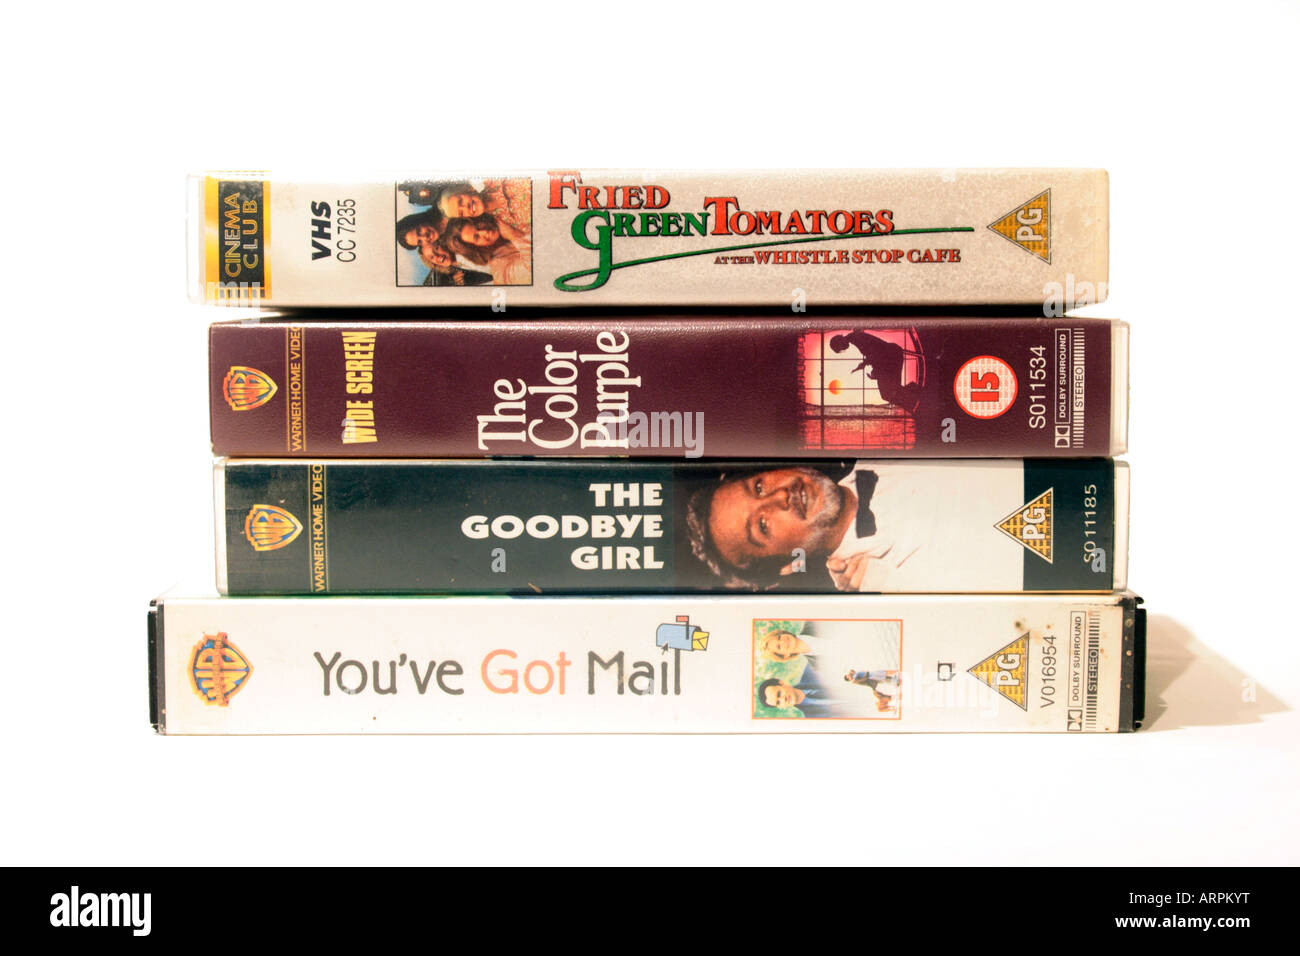 Four VHS video films popular with women, Fried Green Tomatoes at the Whistlestop café (1991) written by fannie Flagg, Stock Photo